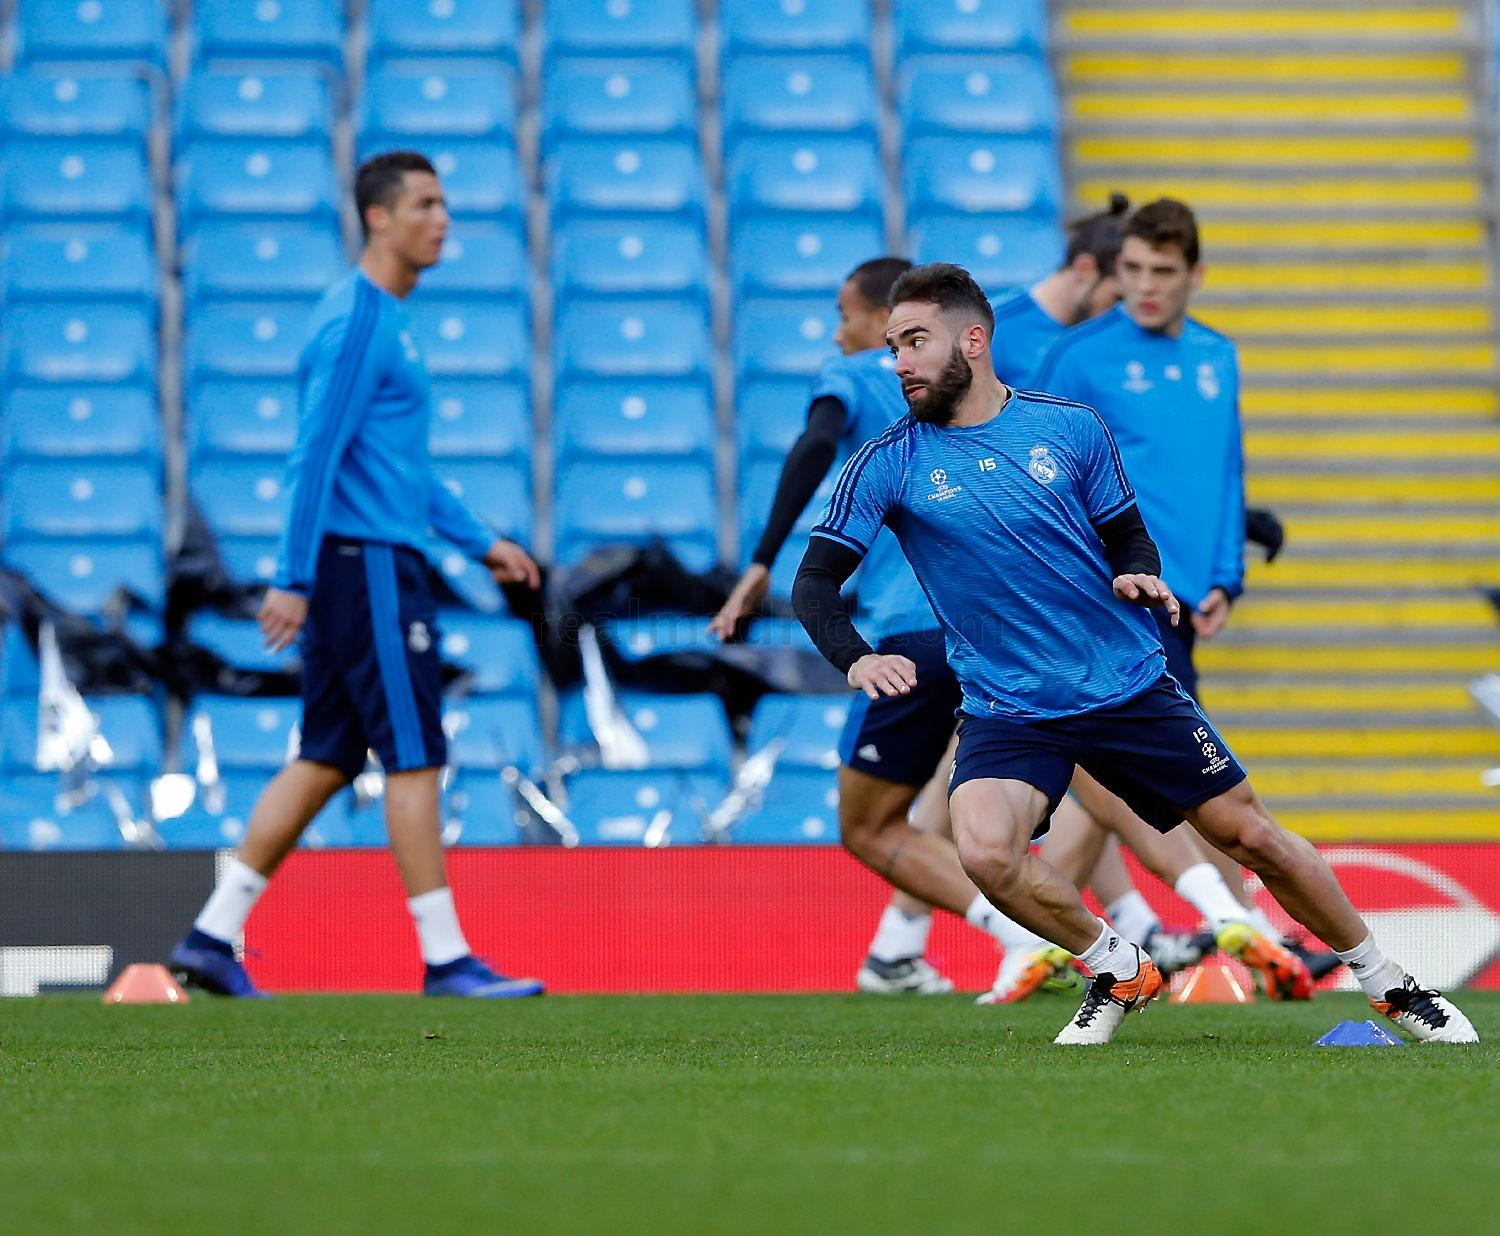 Real Madrid - Entrenamiento del Real Madrid en Manchester - 25-04-2016